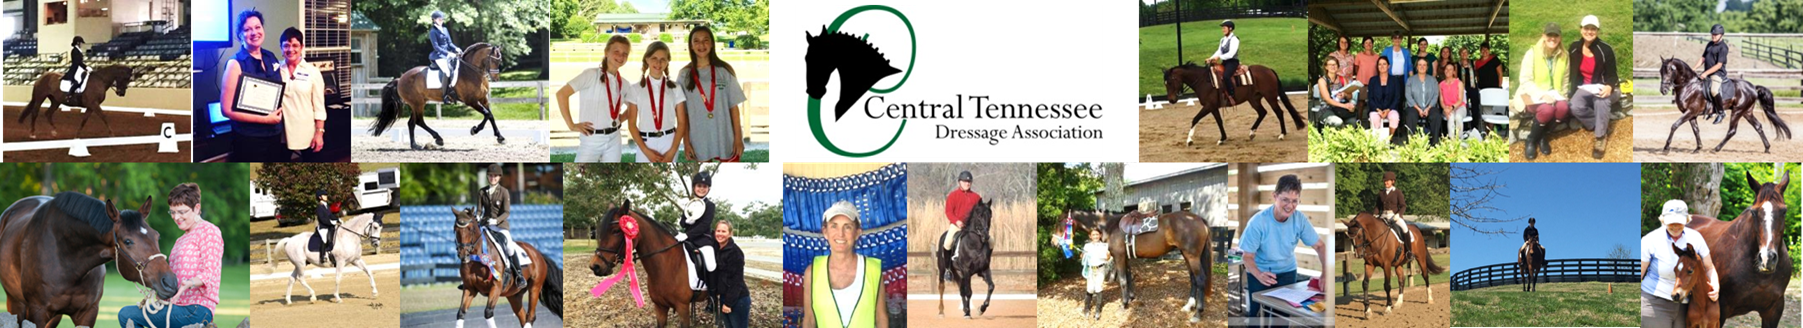 Central Tennessee Dressage Association CTDA)